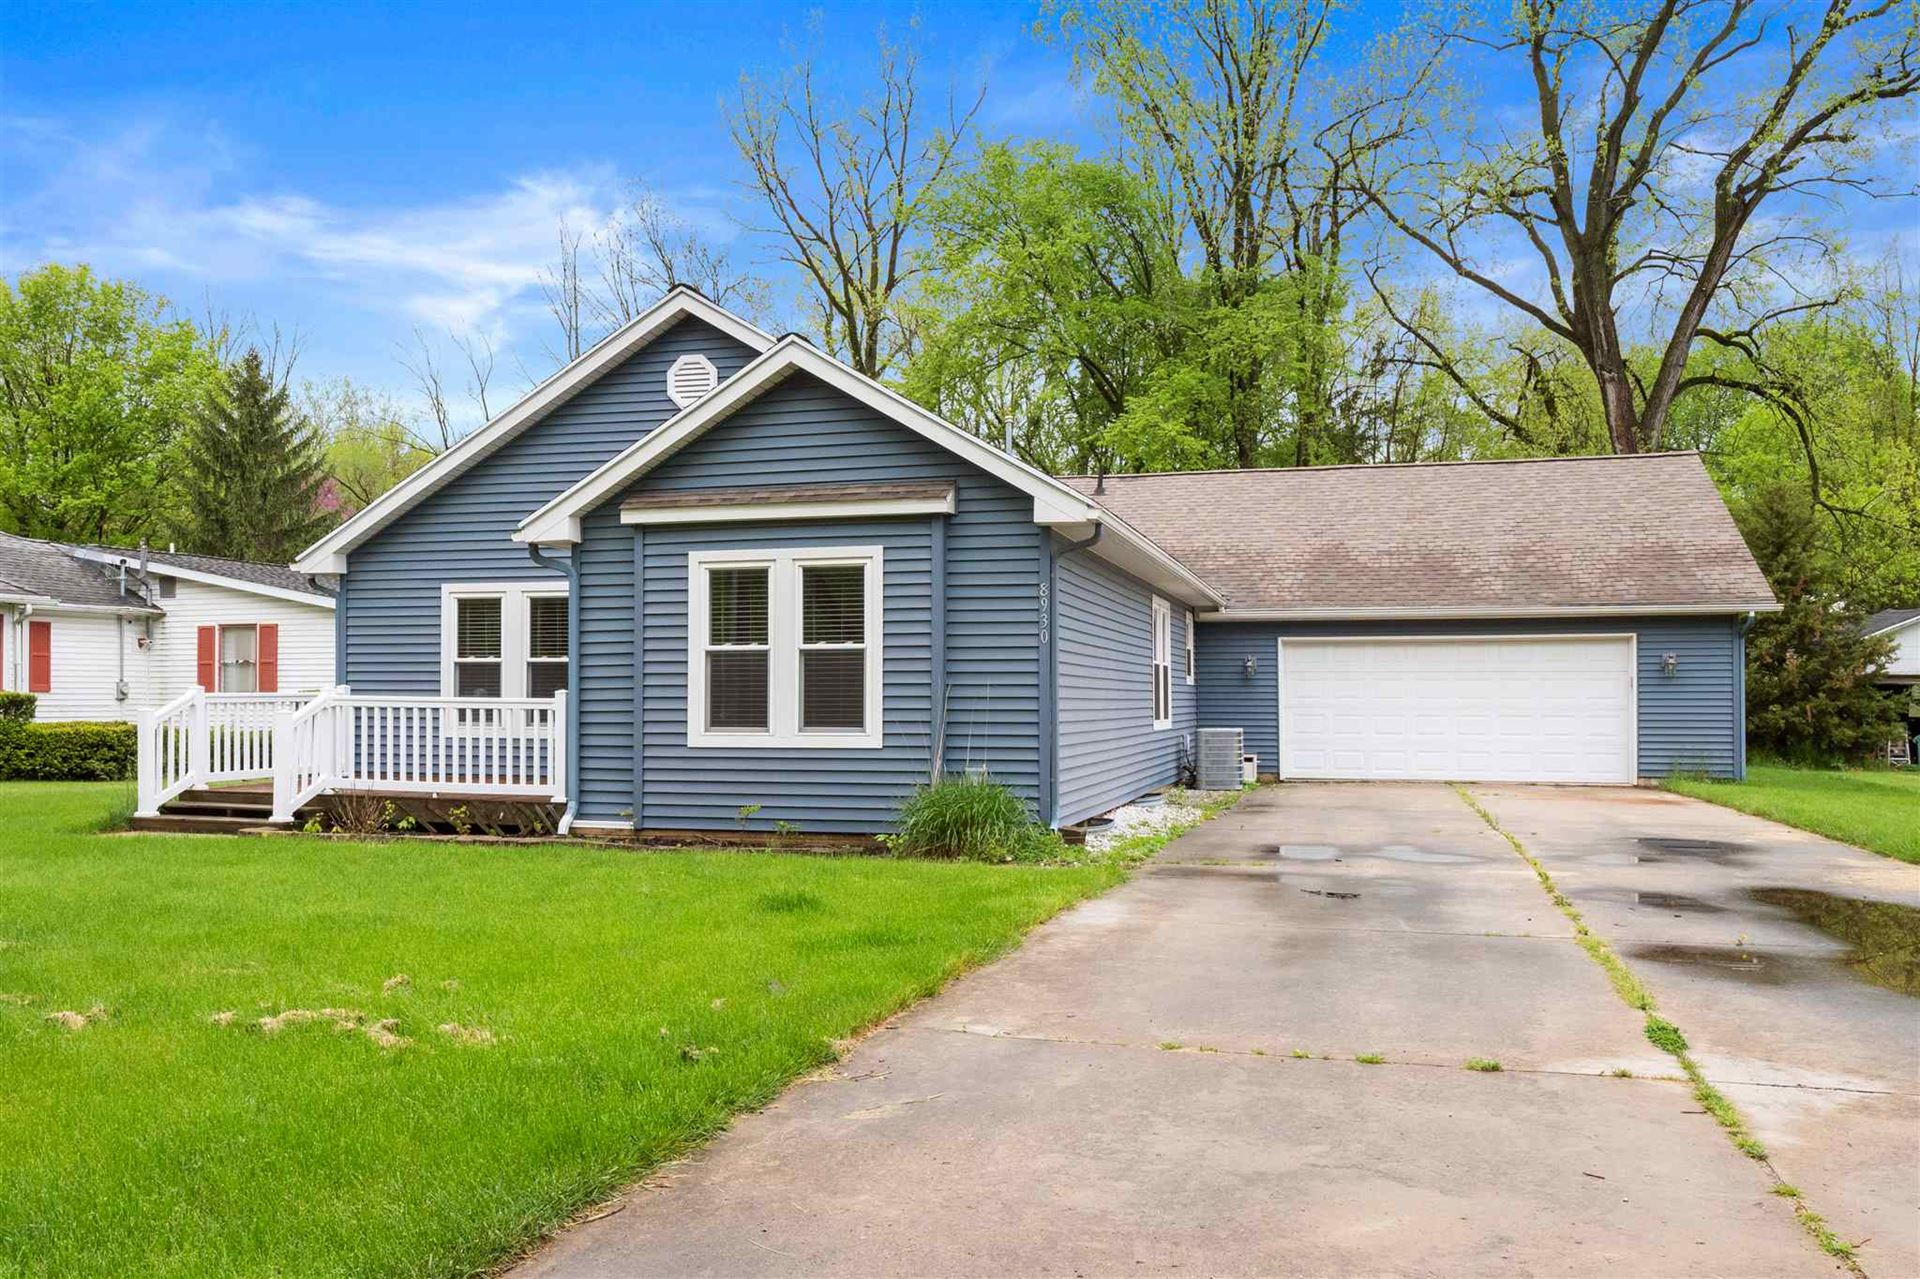 Photo of 8930 E Crow Road, Syracuse, IN 46567 (MLS # 202018226)